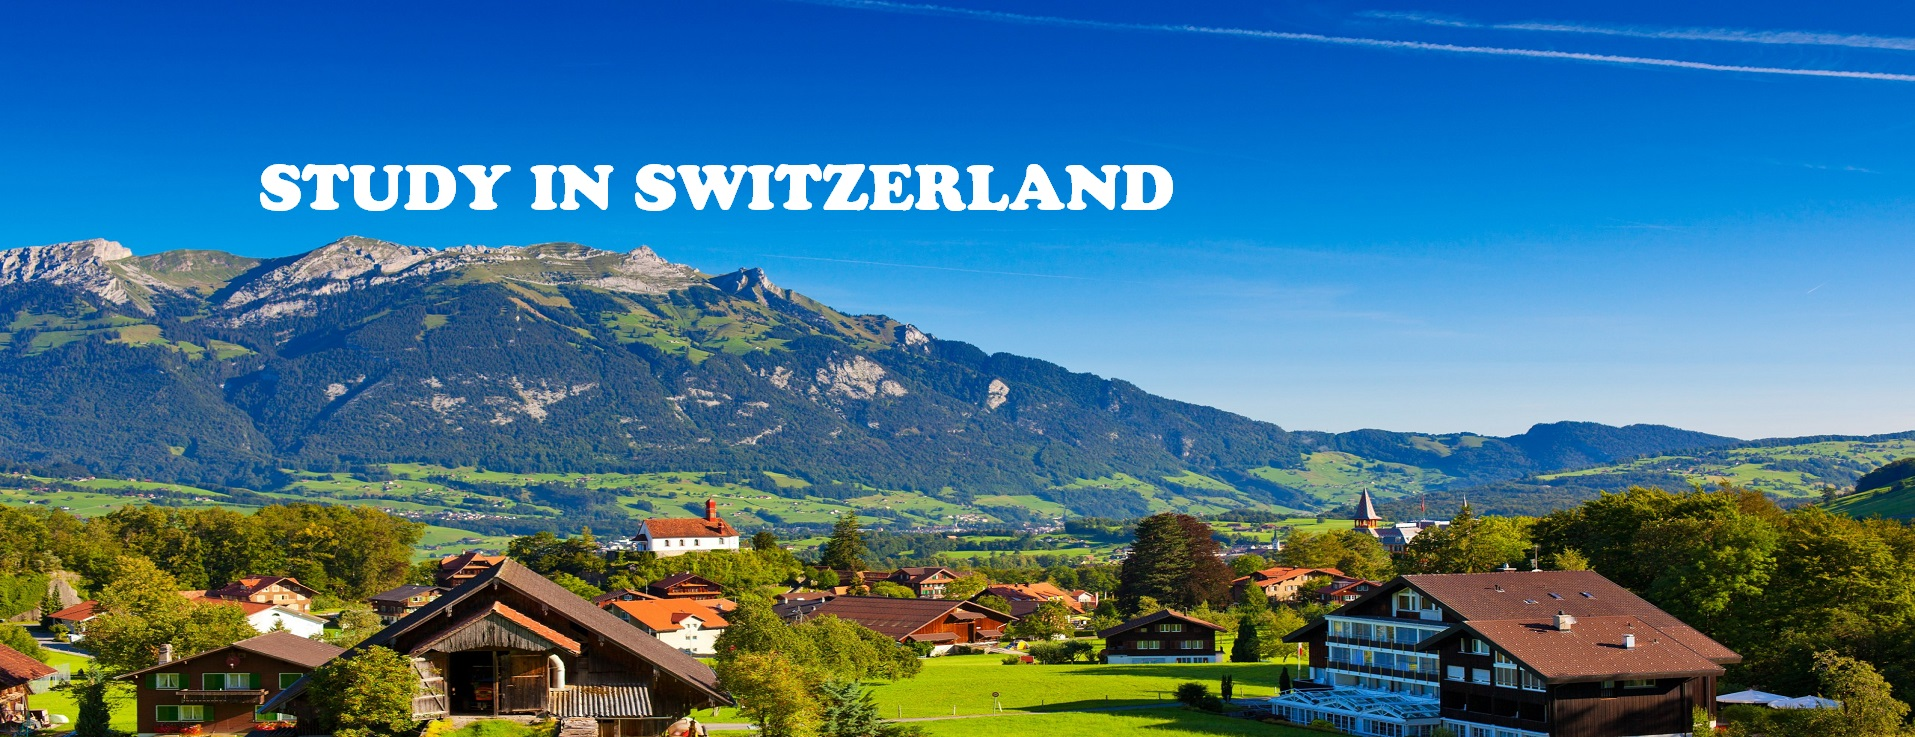 study in Switzerland for Indian students | study in Switzerland cost | Cost of Study in Switzerland | Education Costs for Studying Abroad in Switzerland | studying and working in Switzerland